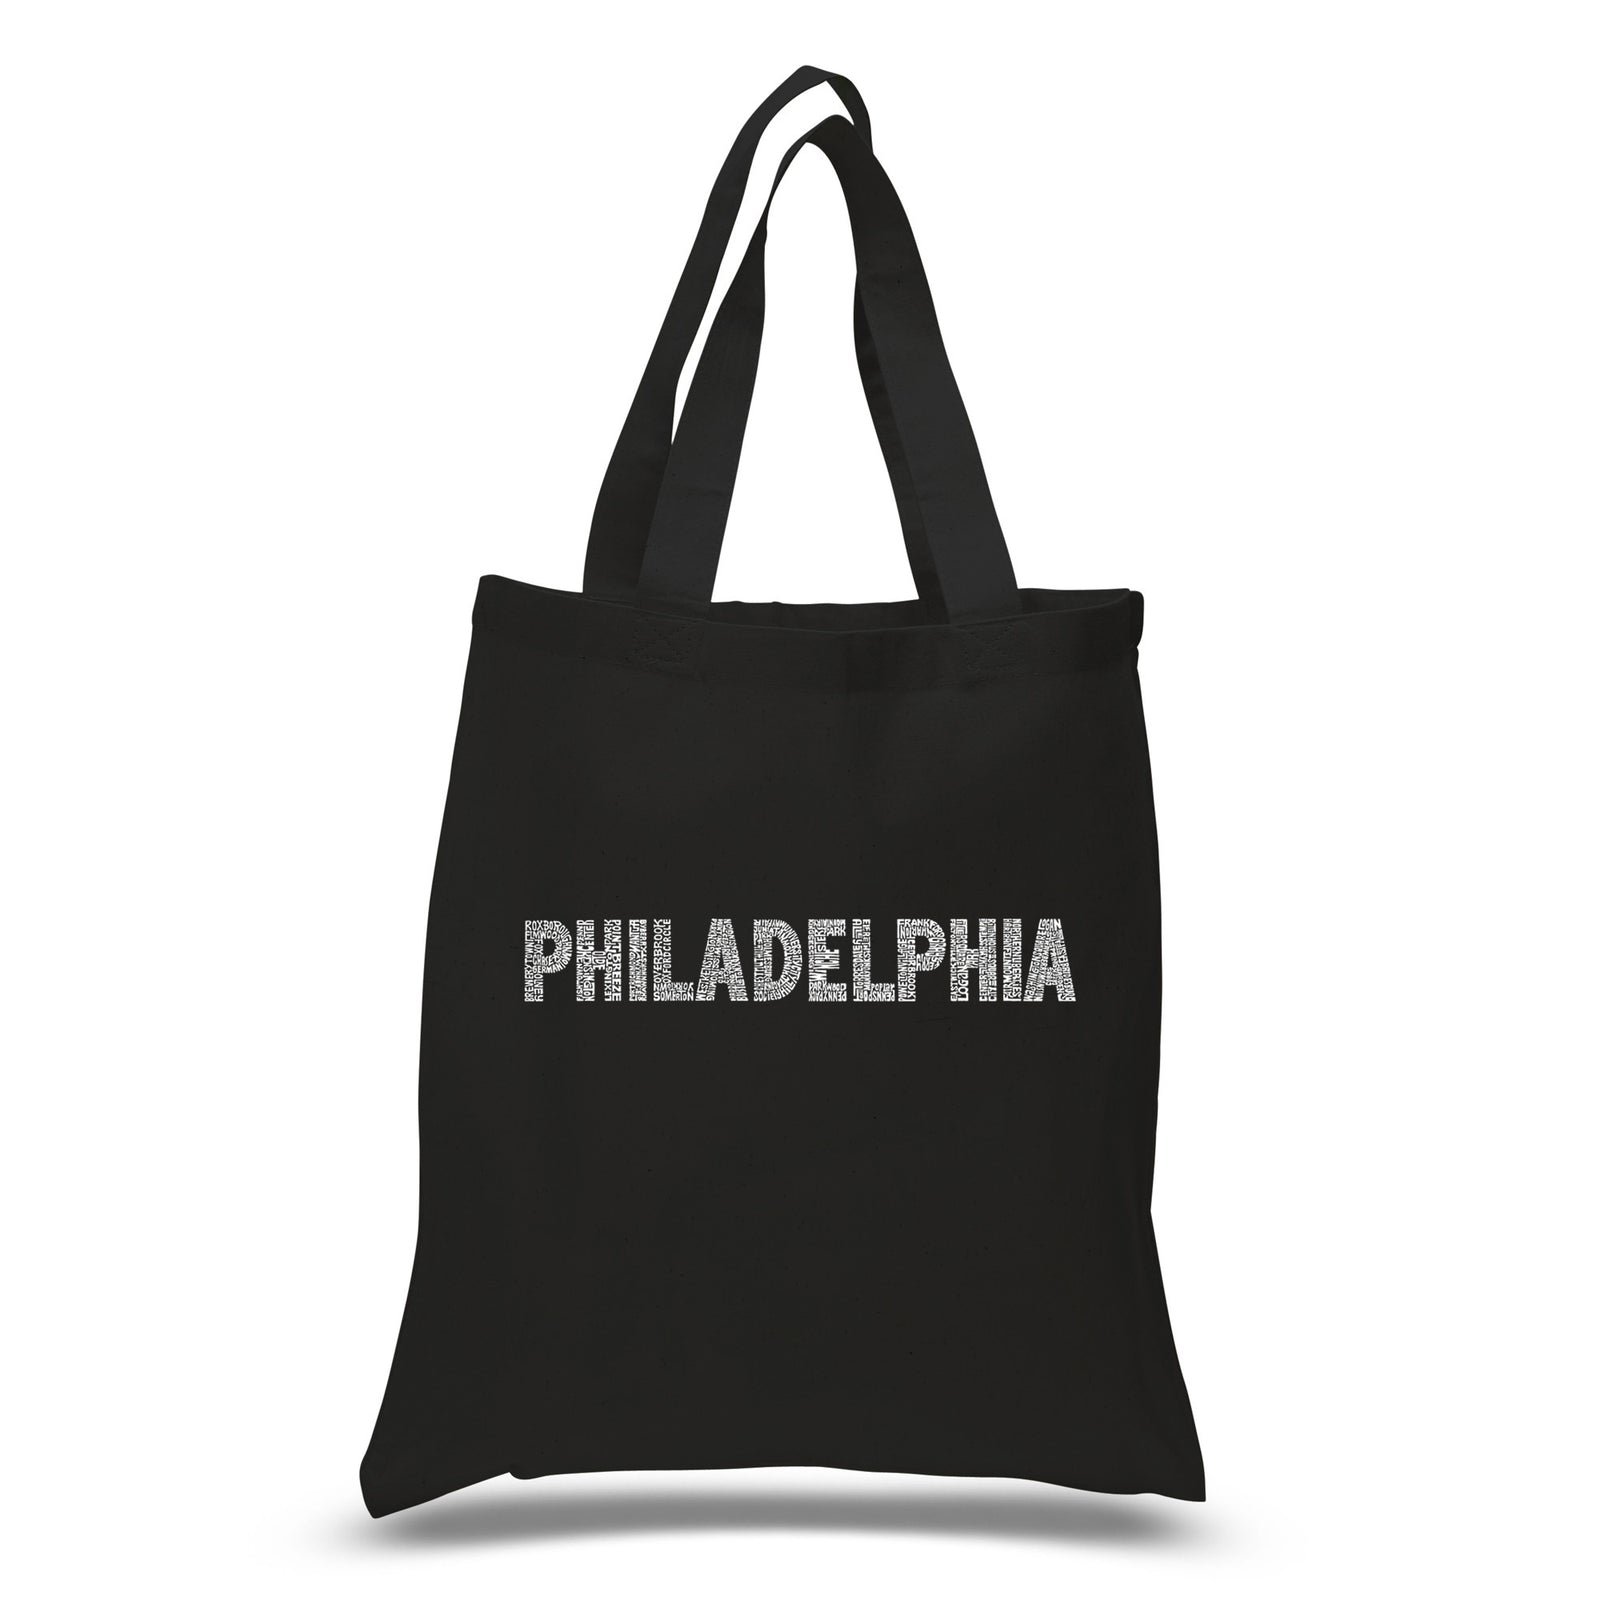 Small Tote Bag - PHILADELPHIA NEIGHBORHOODS